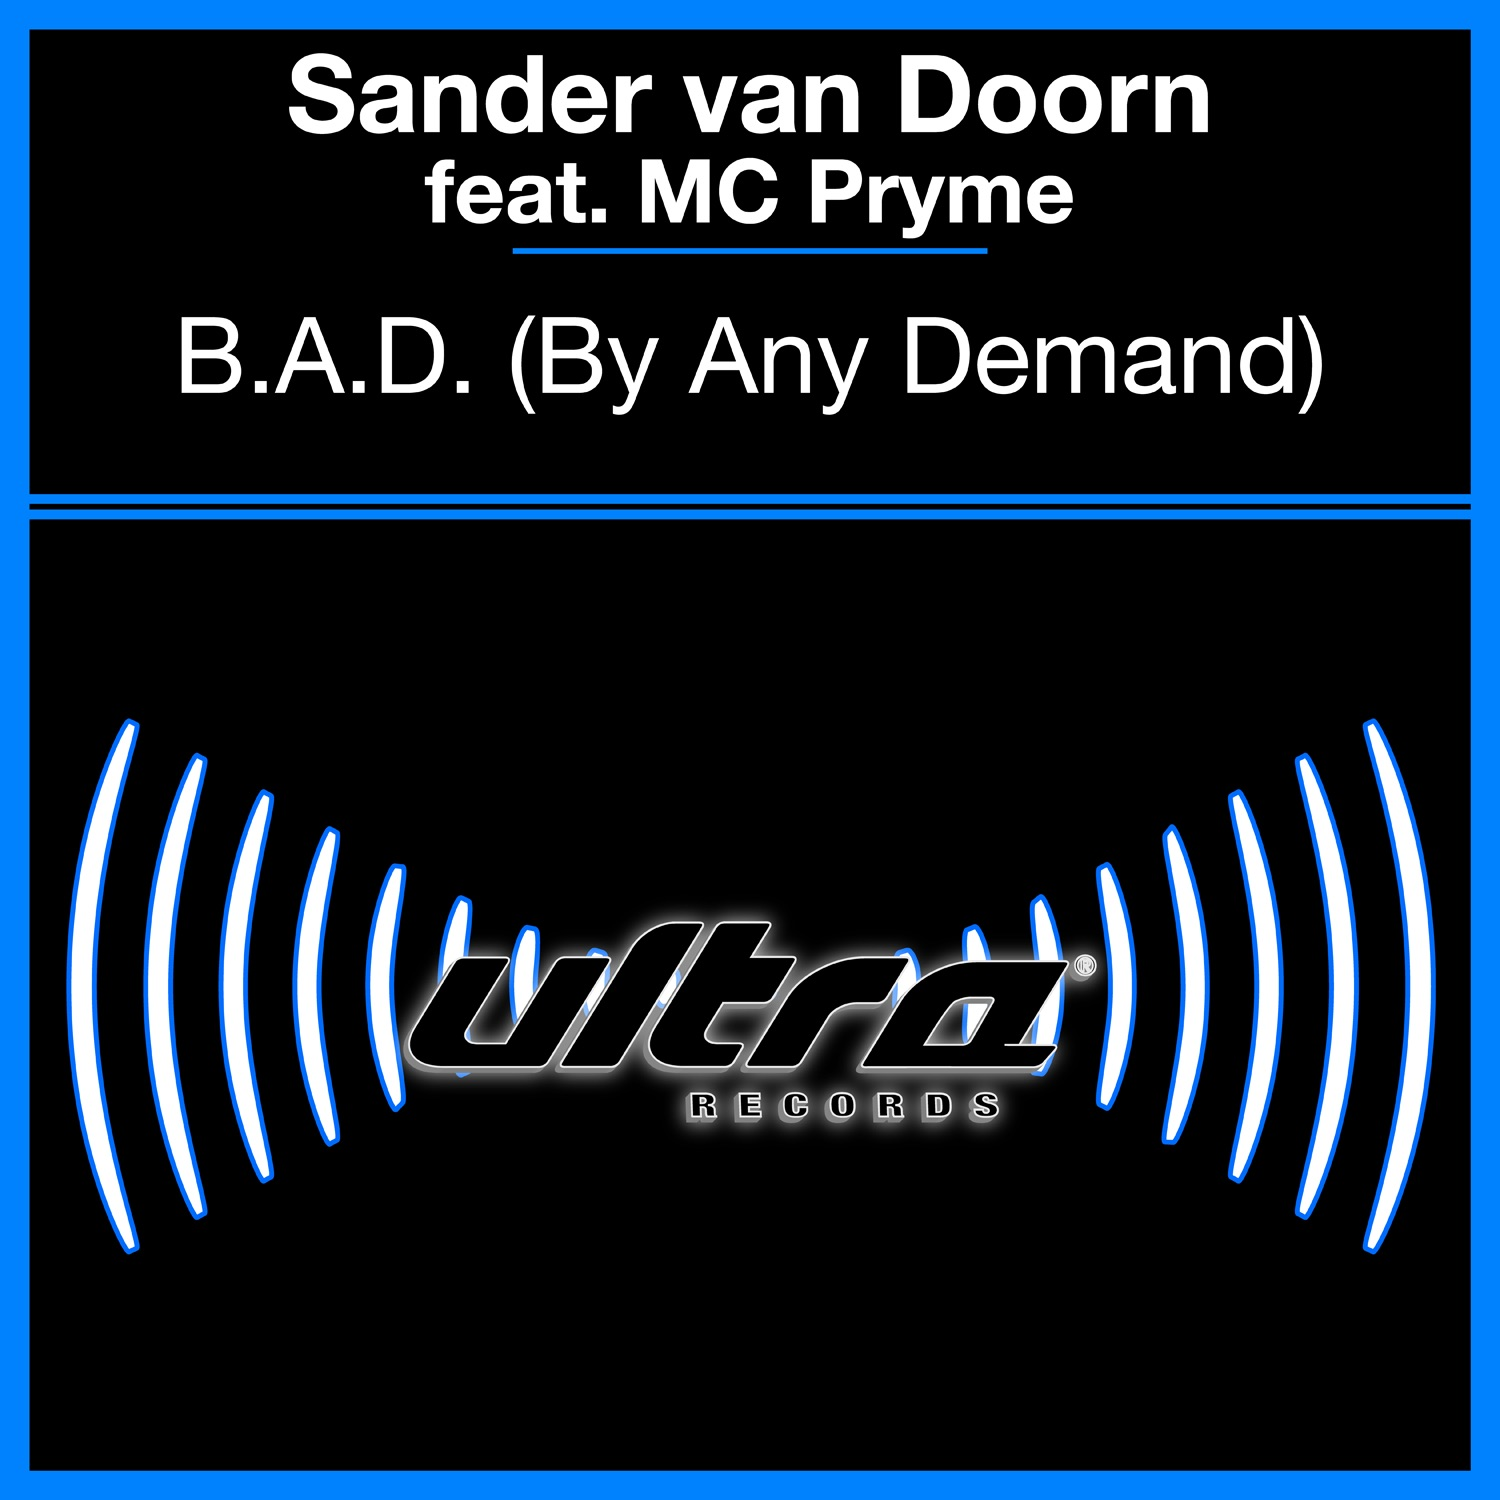 Sander van Doorn Feat. MC Pryme - By Any Demand